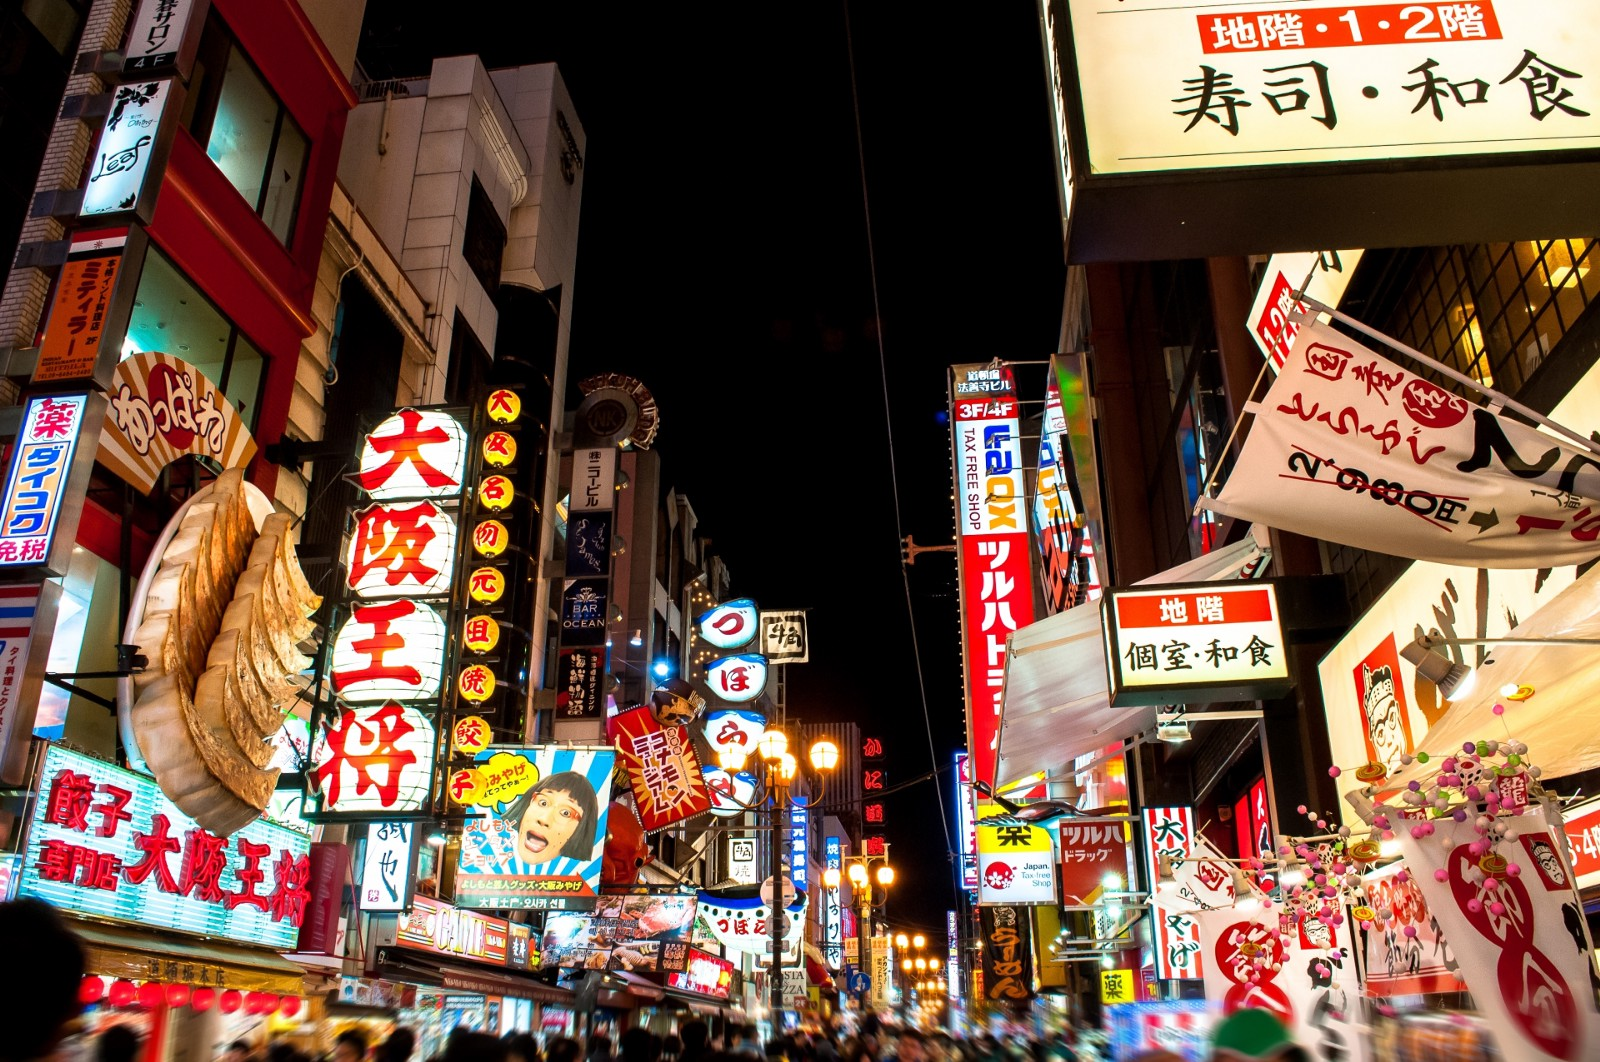 The bustling street of Dotonbori with flashy neon lights